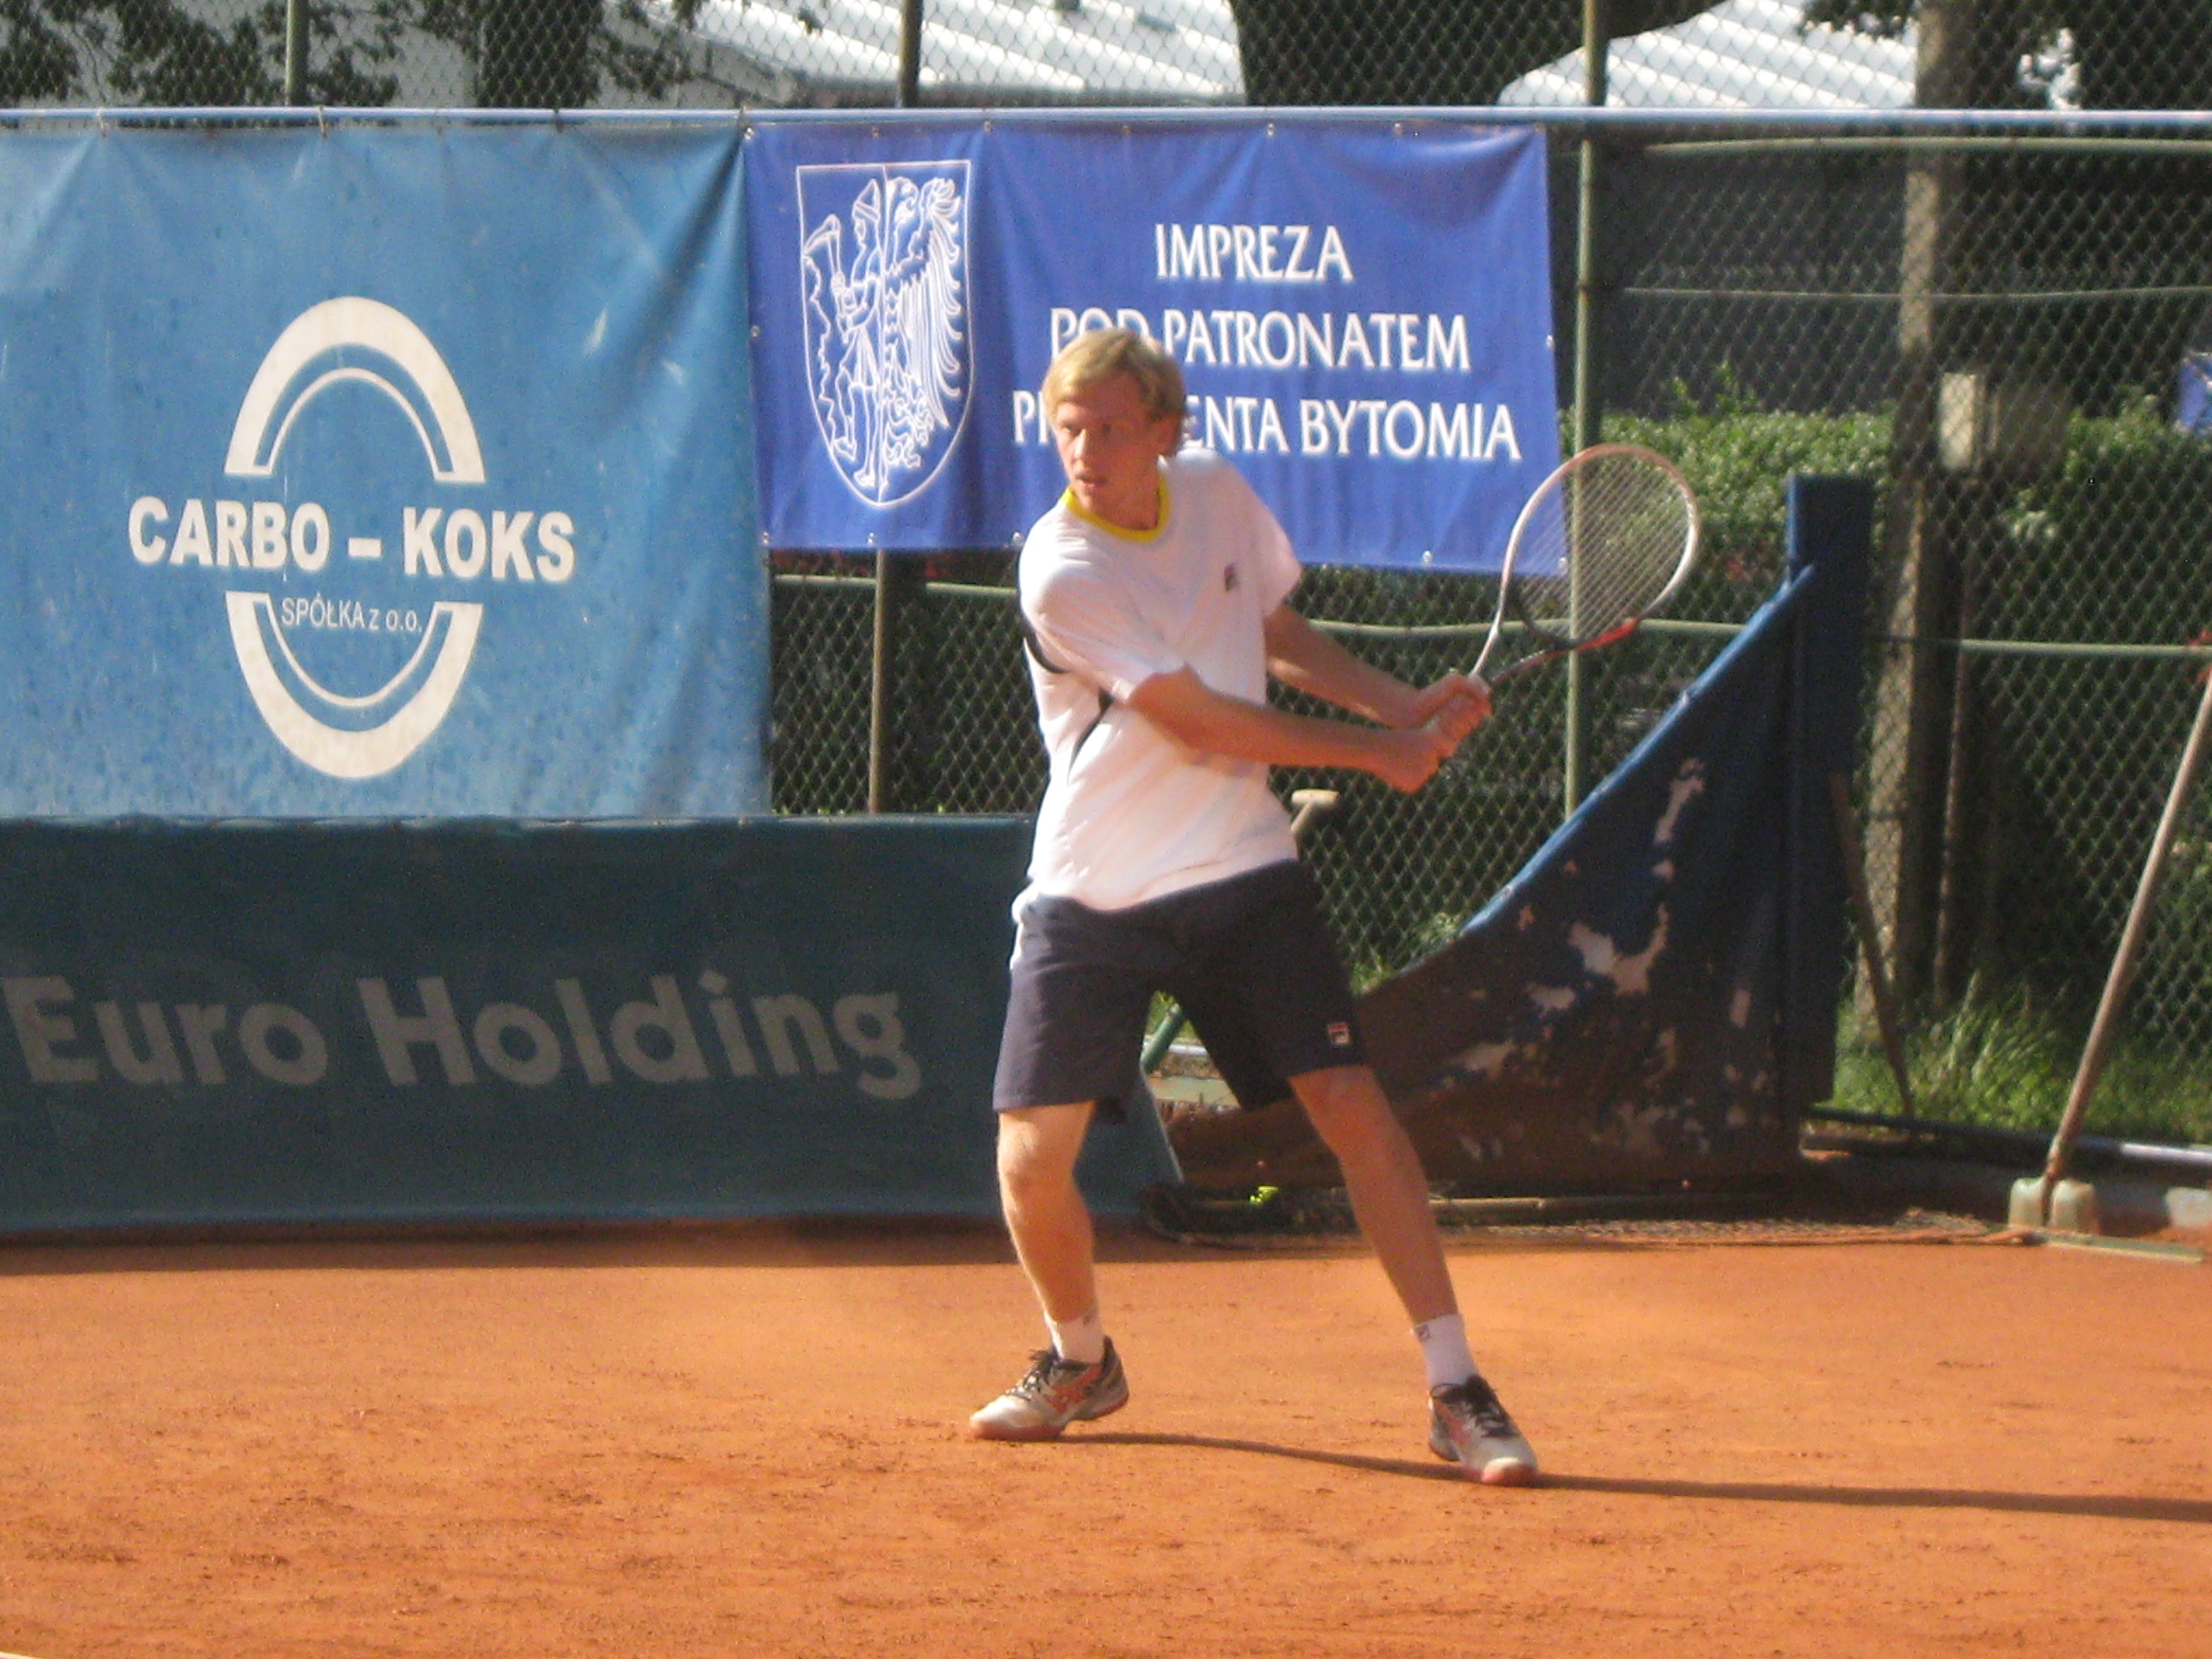 files/galeria/2014/ITF Futures Bytom Cup 2014/IMG_9576.JPG